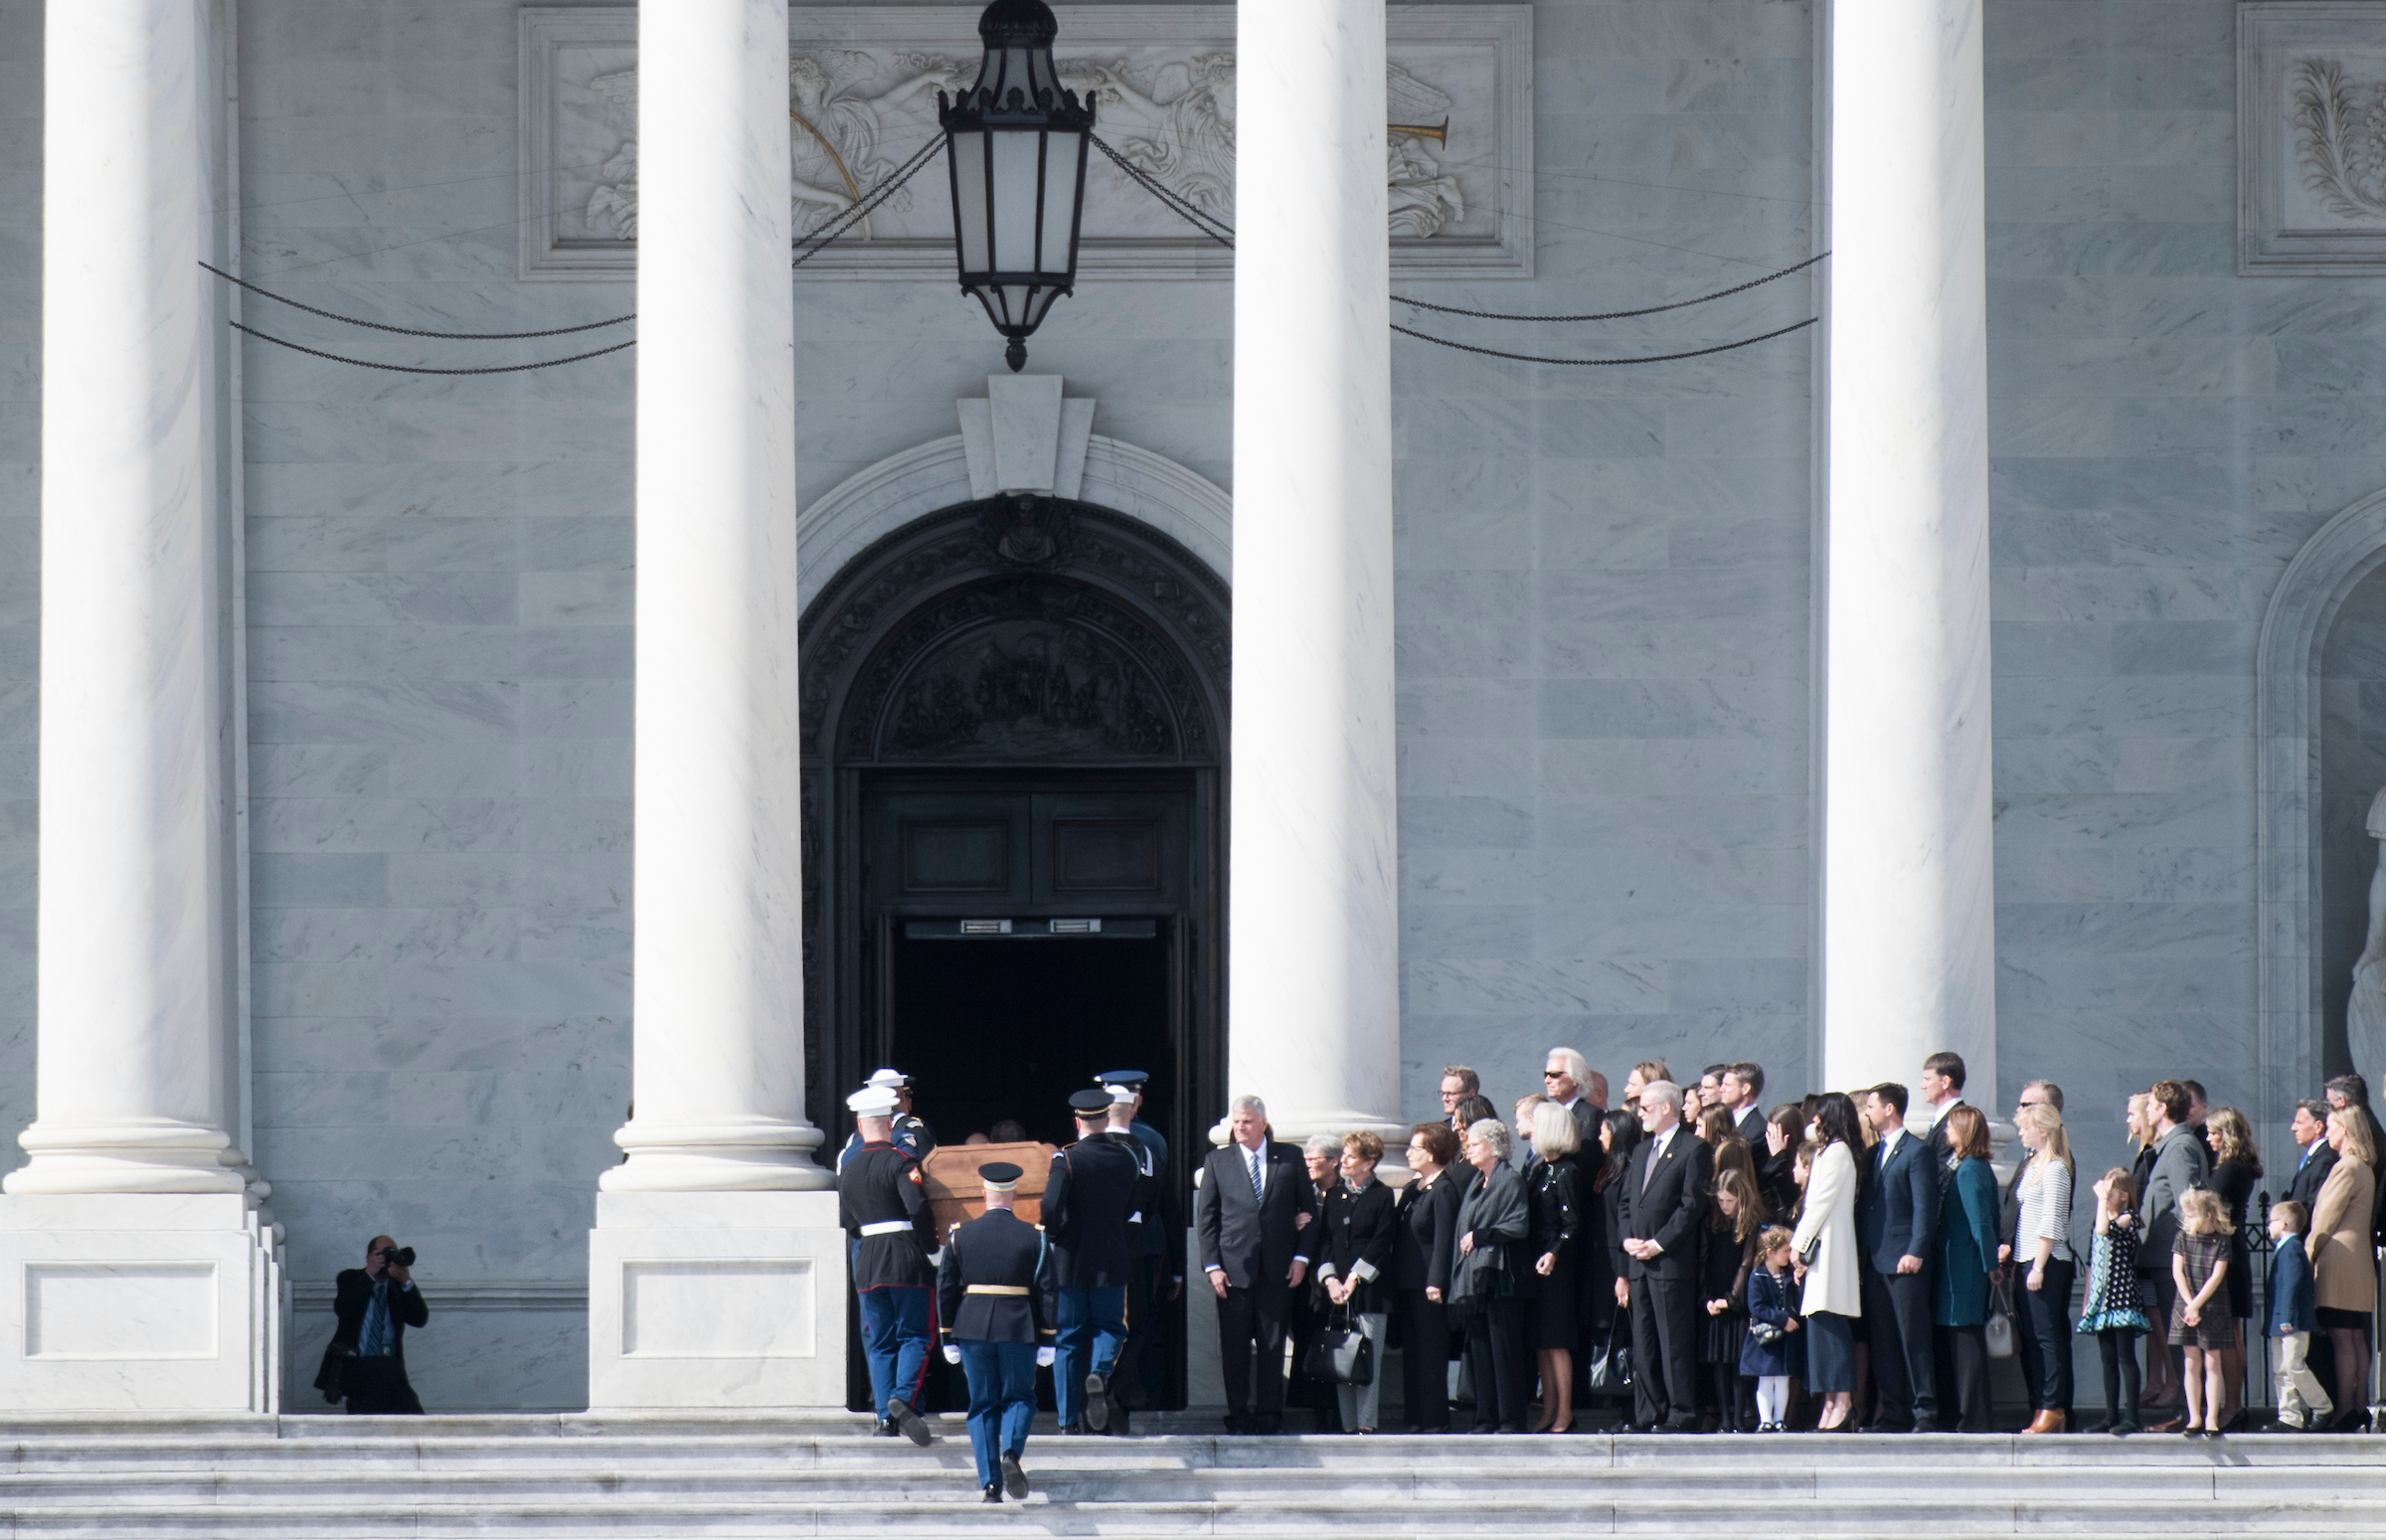 The honor guard carries the Rev. Billy Graham's casket up the Capitol steps to the Rotunda where he will lie in honor on Wednesday, Feb. 28, 2018. (Bill Clark/CQ Roll Call)